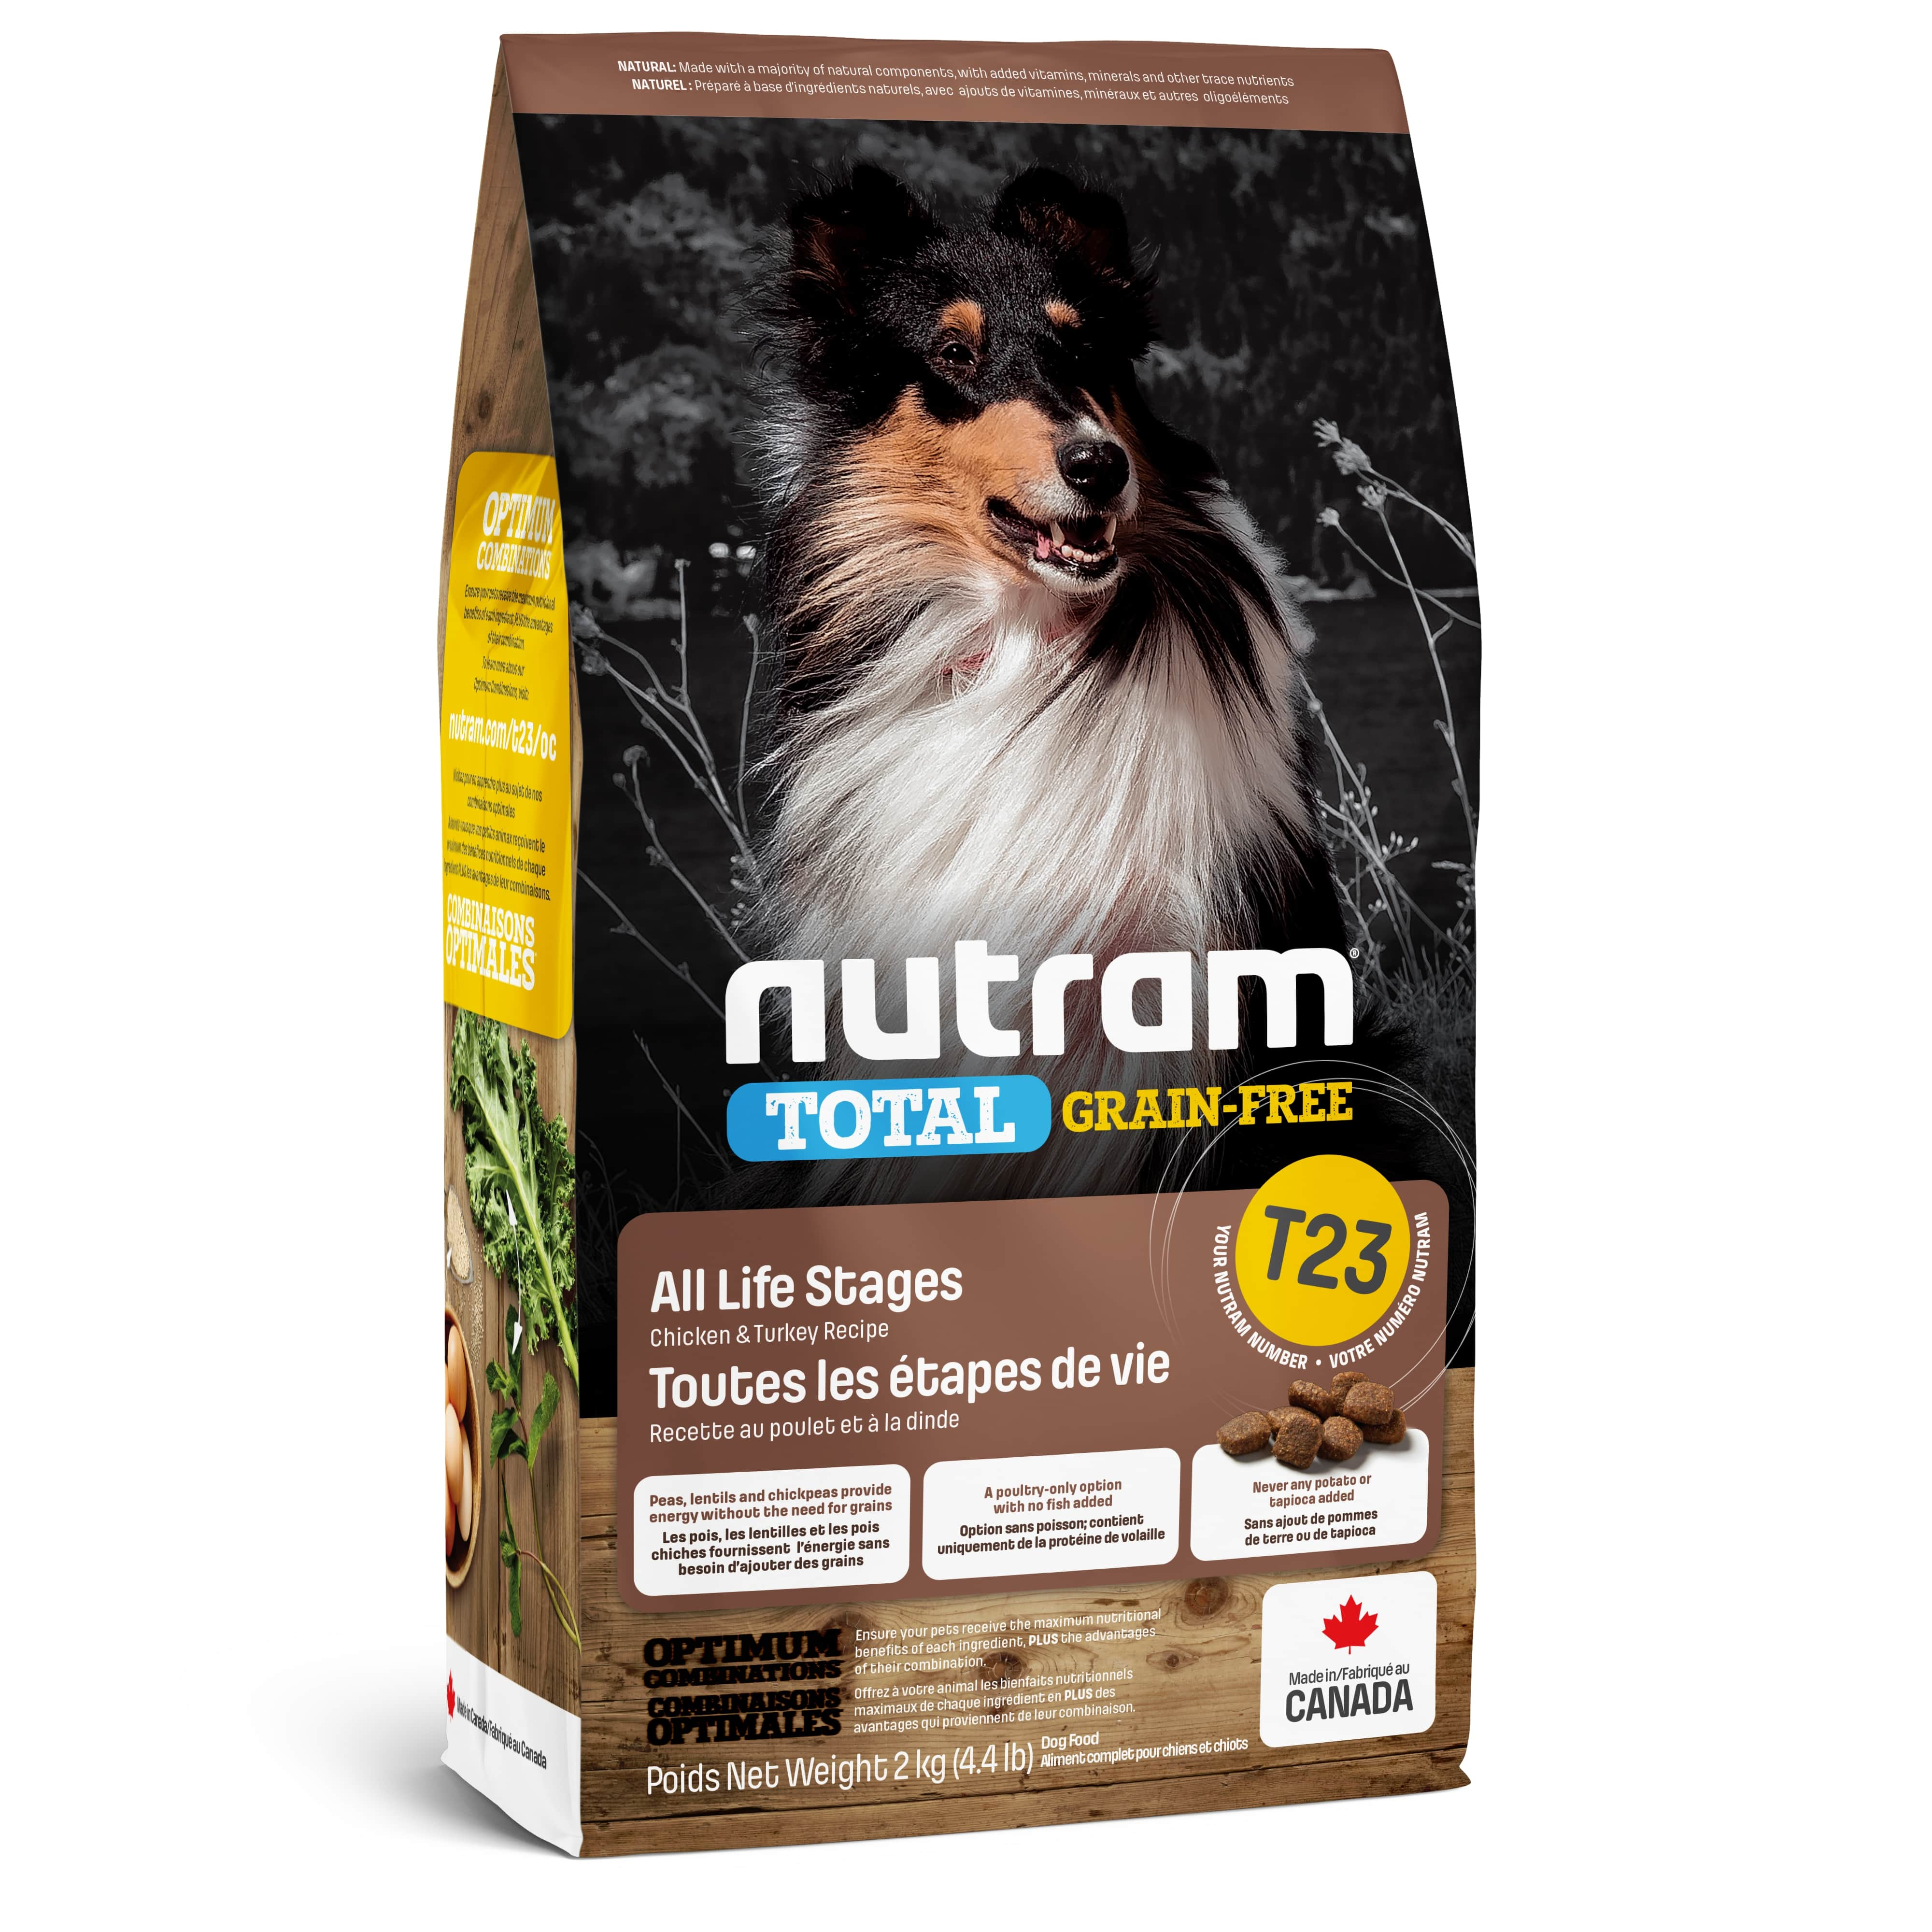 T23 Nutram Total Grain-Free Turkey, Chiken & Duck Dog Food Для всех жизненных стадий с индейкой и ку